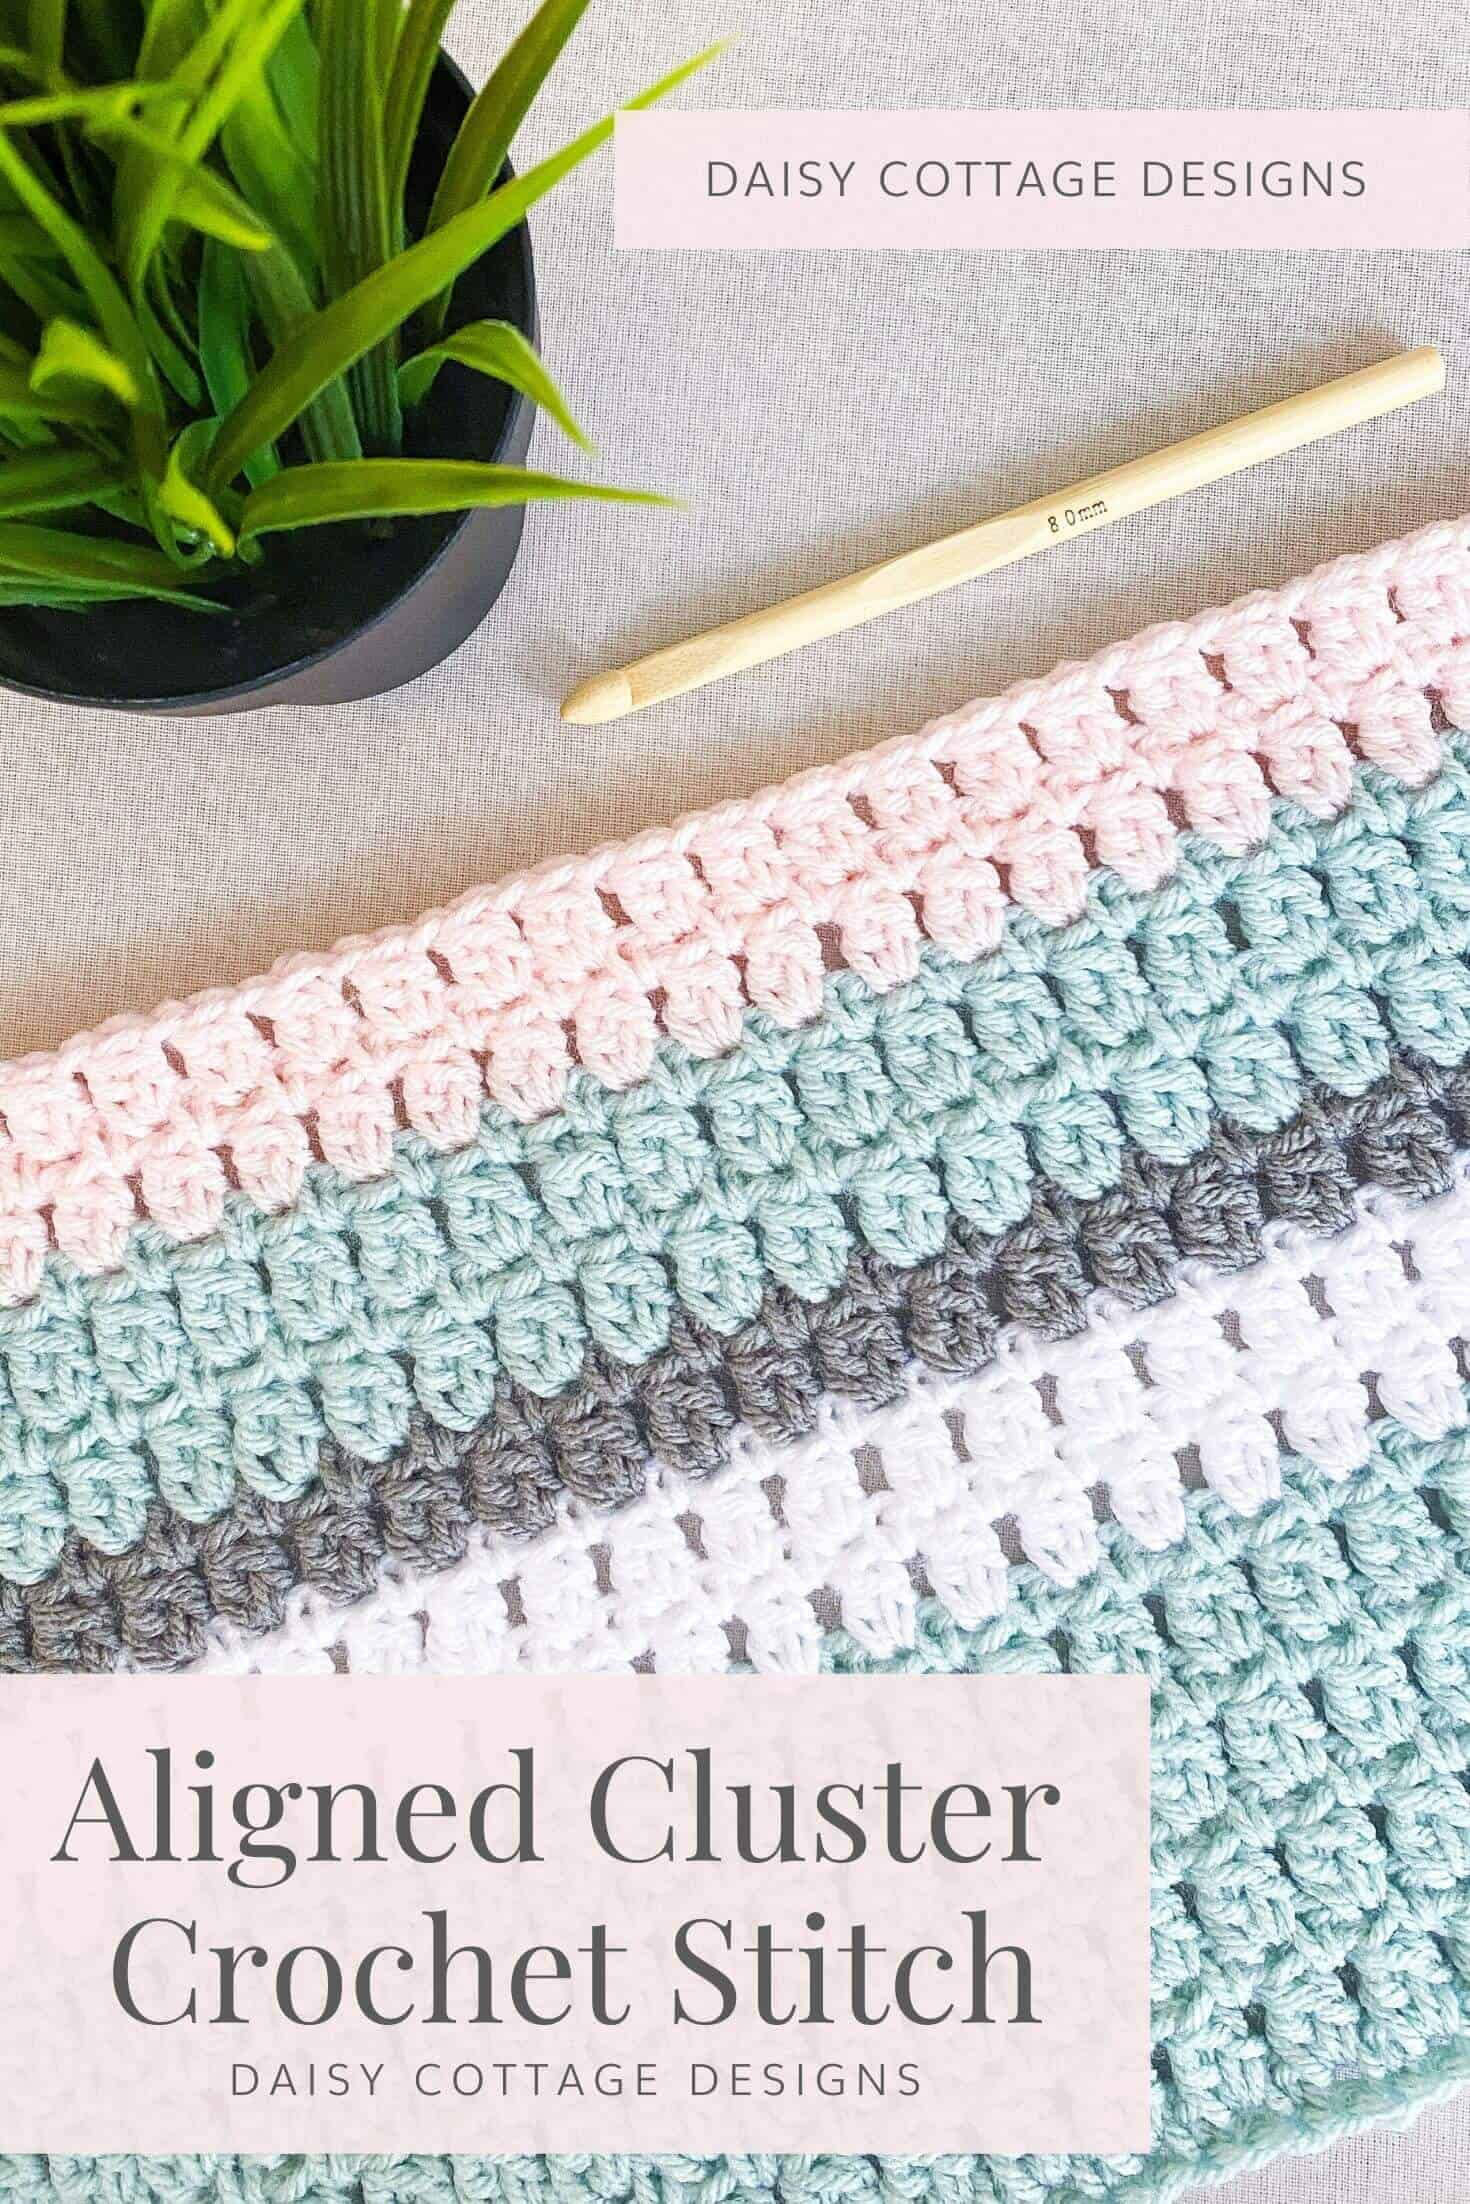 Learn how to make a double crochet cluster stitch using this crochet tutorial from Daisy Cottage Designs.